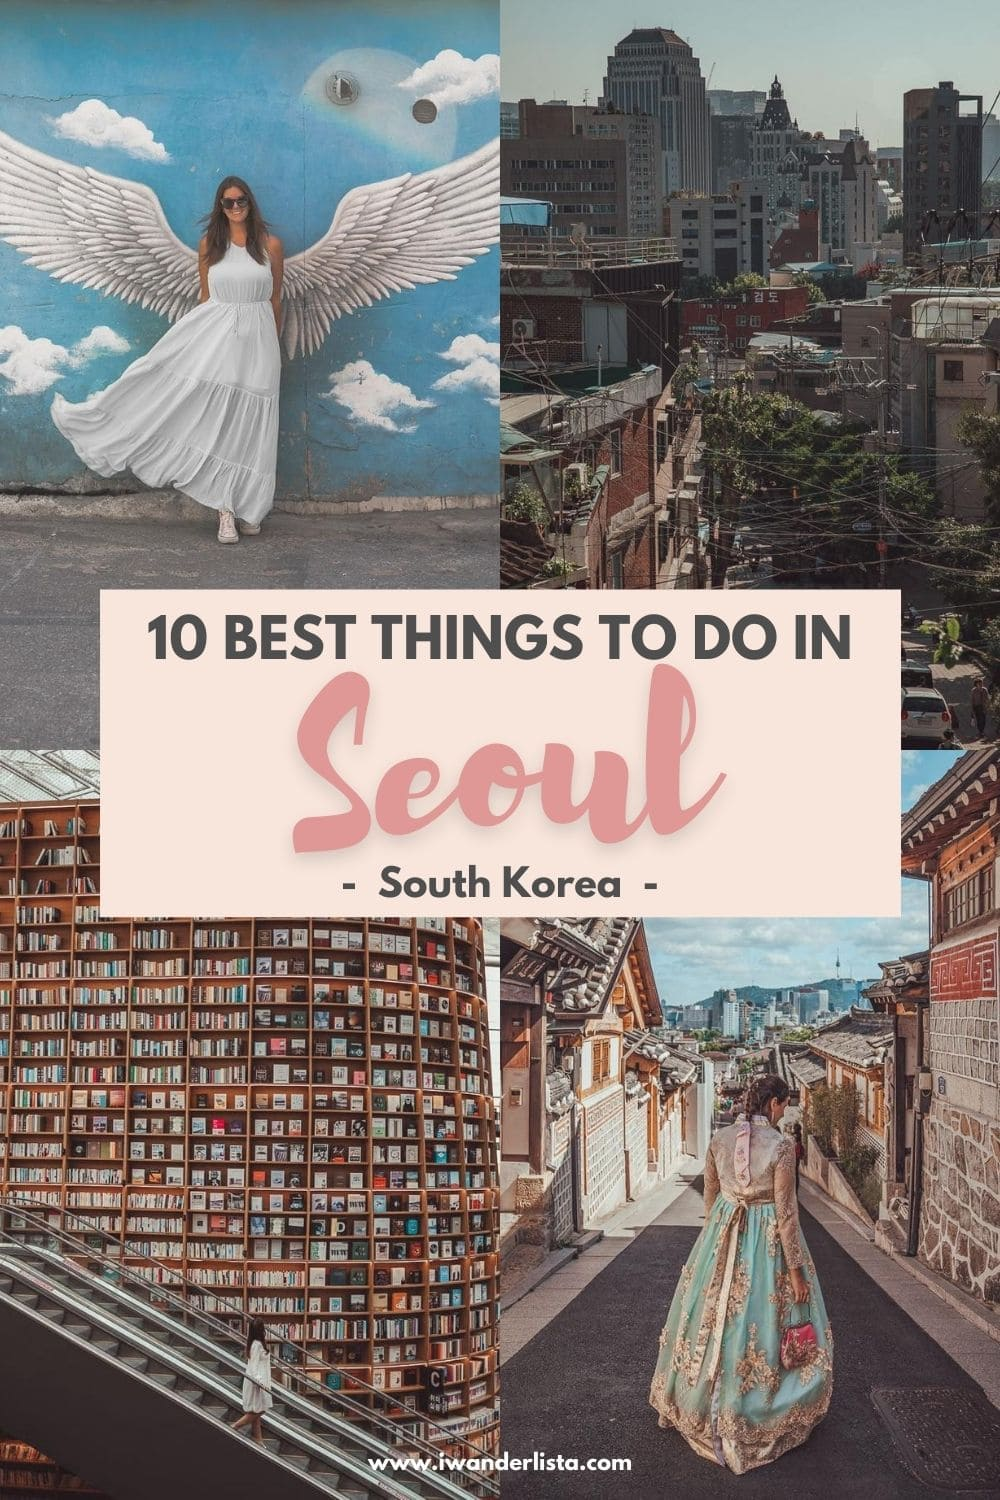 To do in Seoul